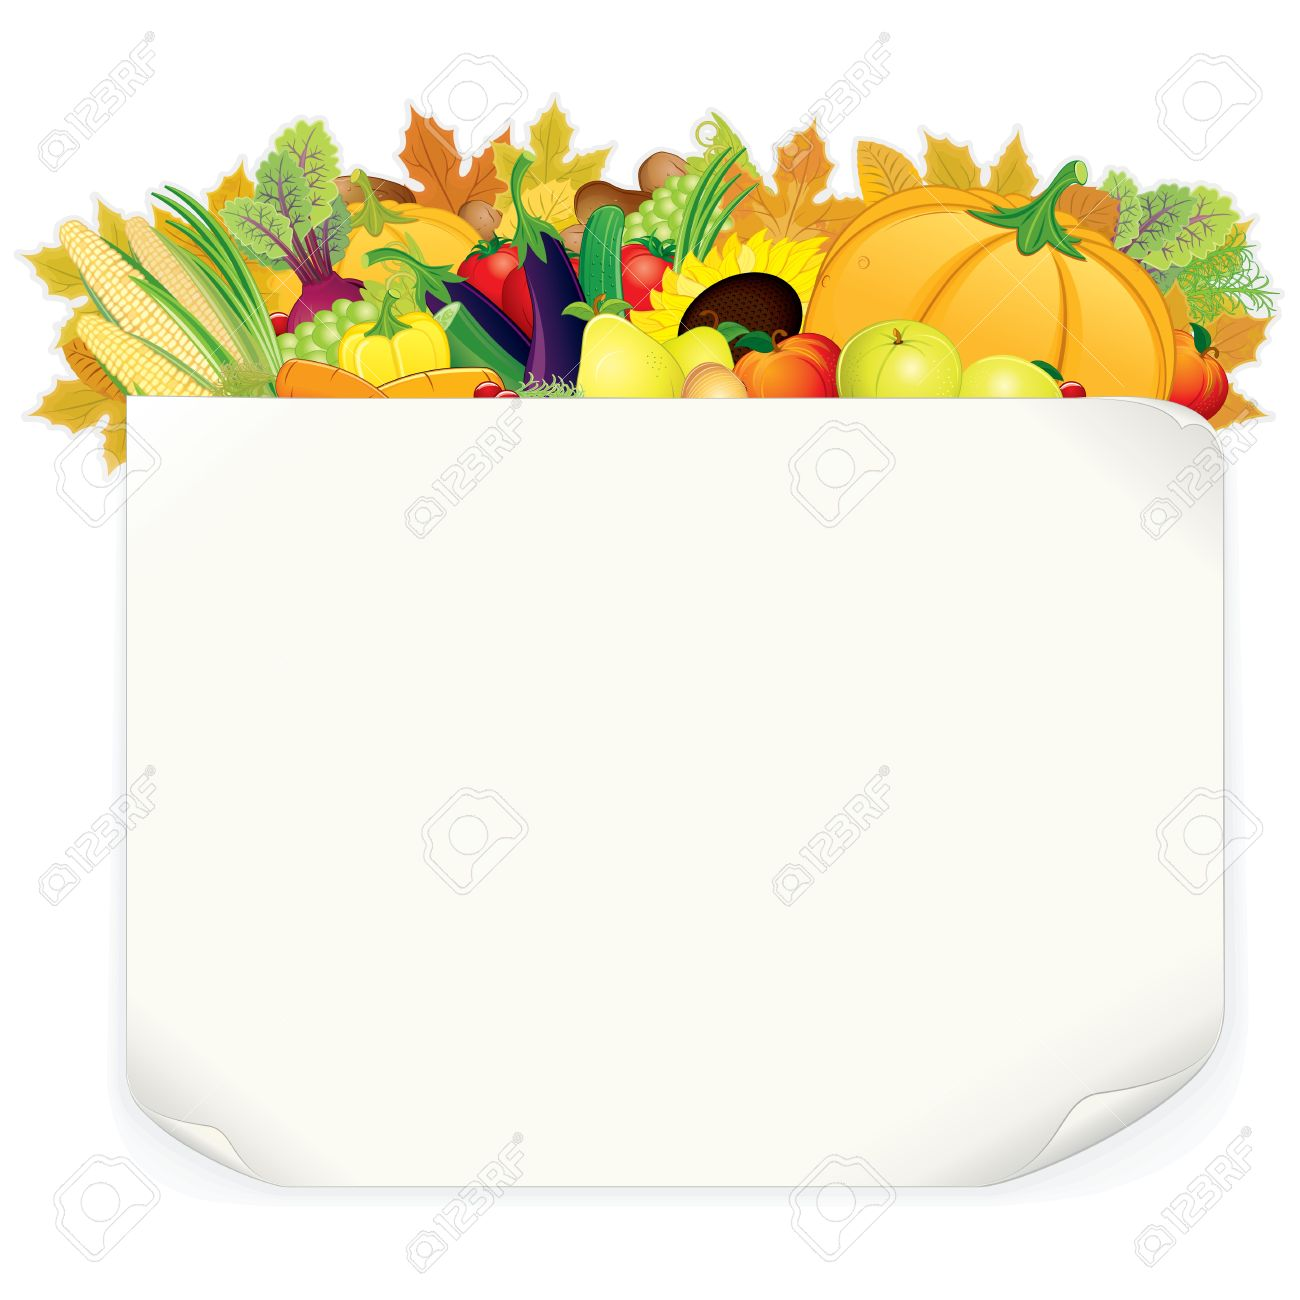 Thanksgiving Background Stock Vector - 16446690